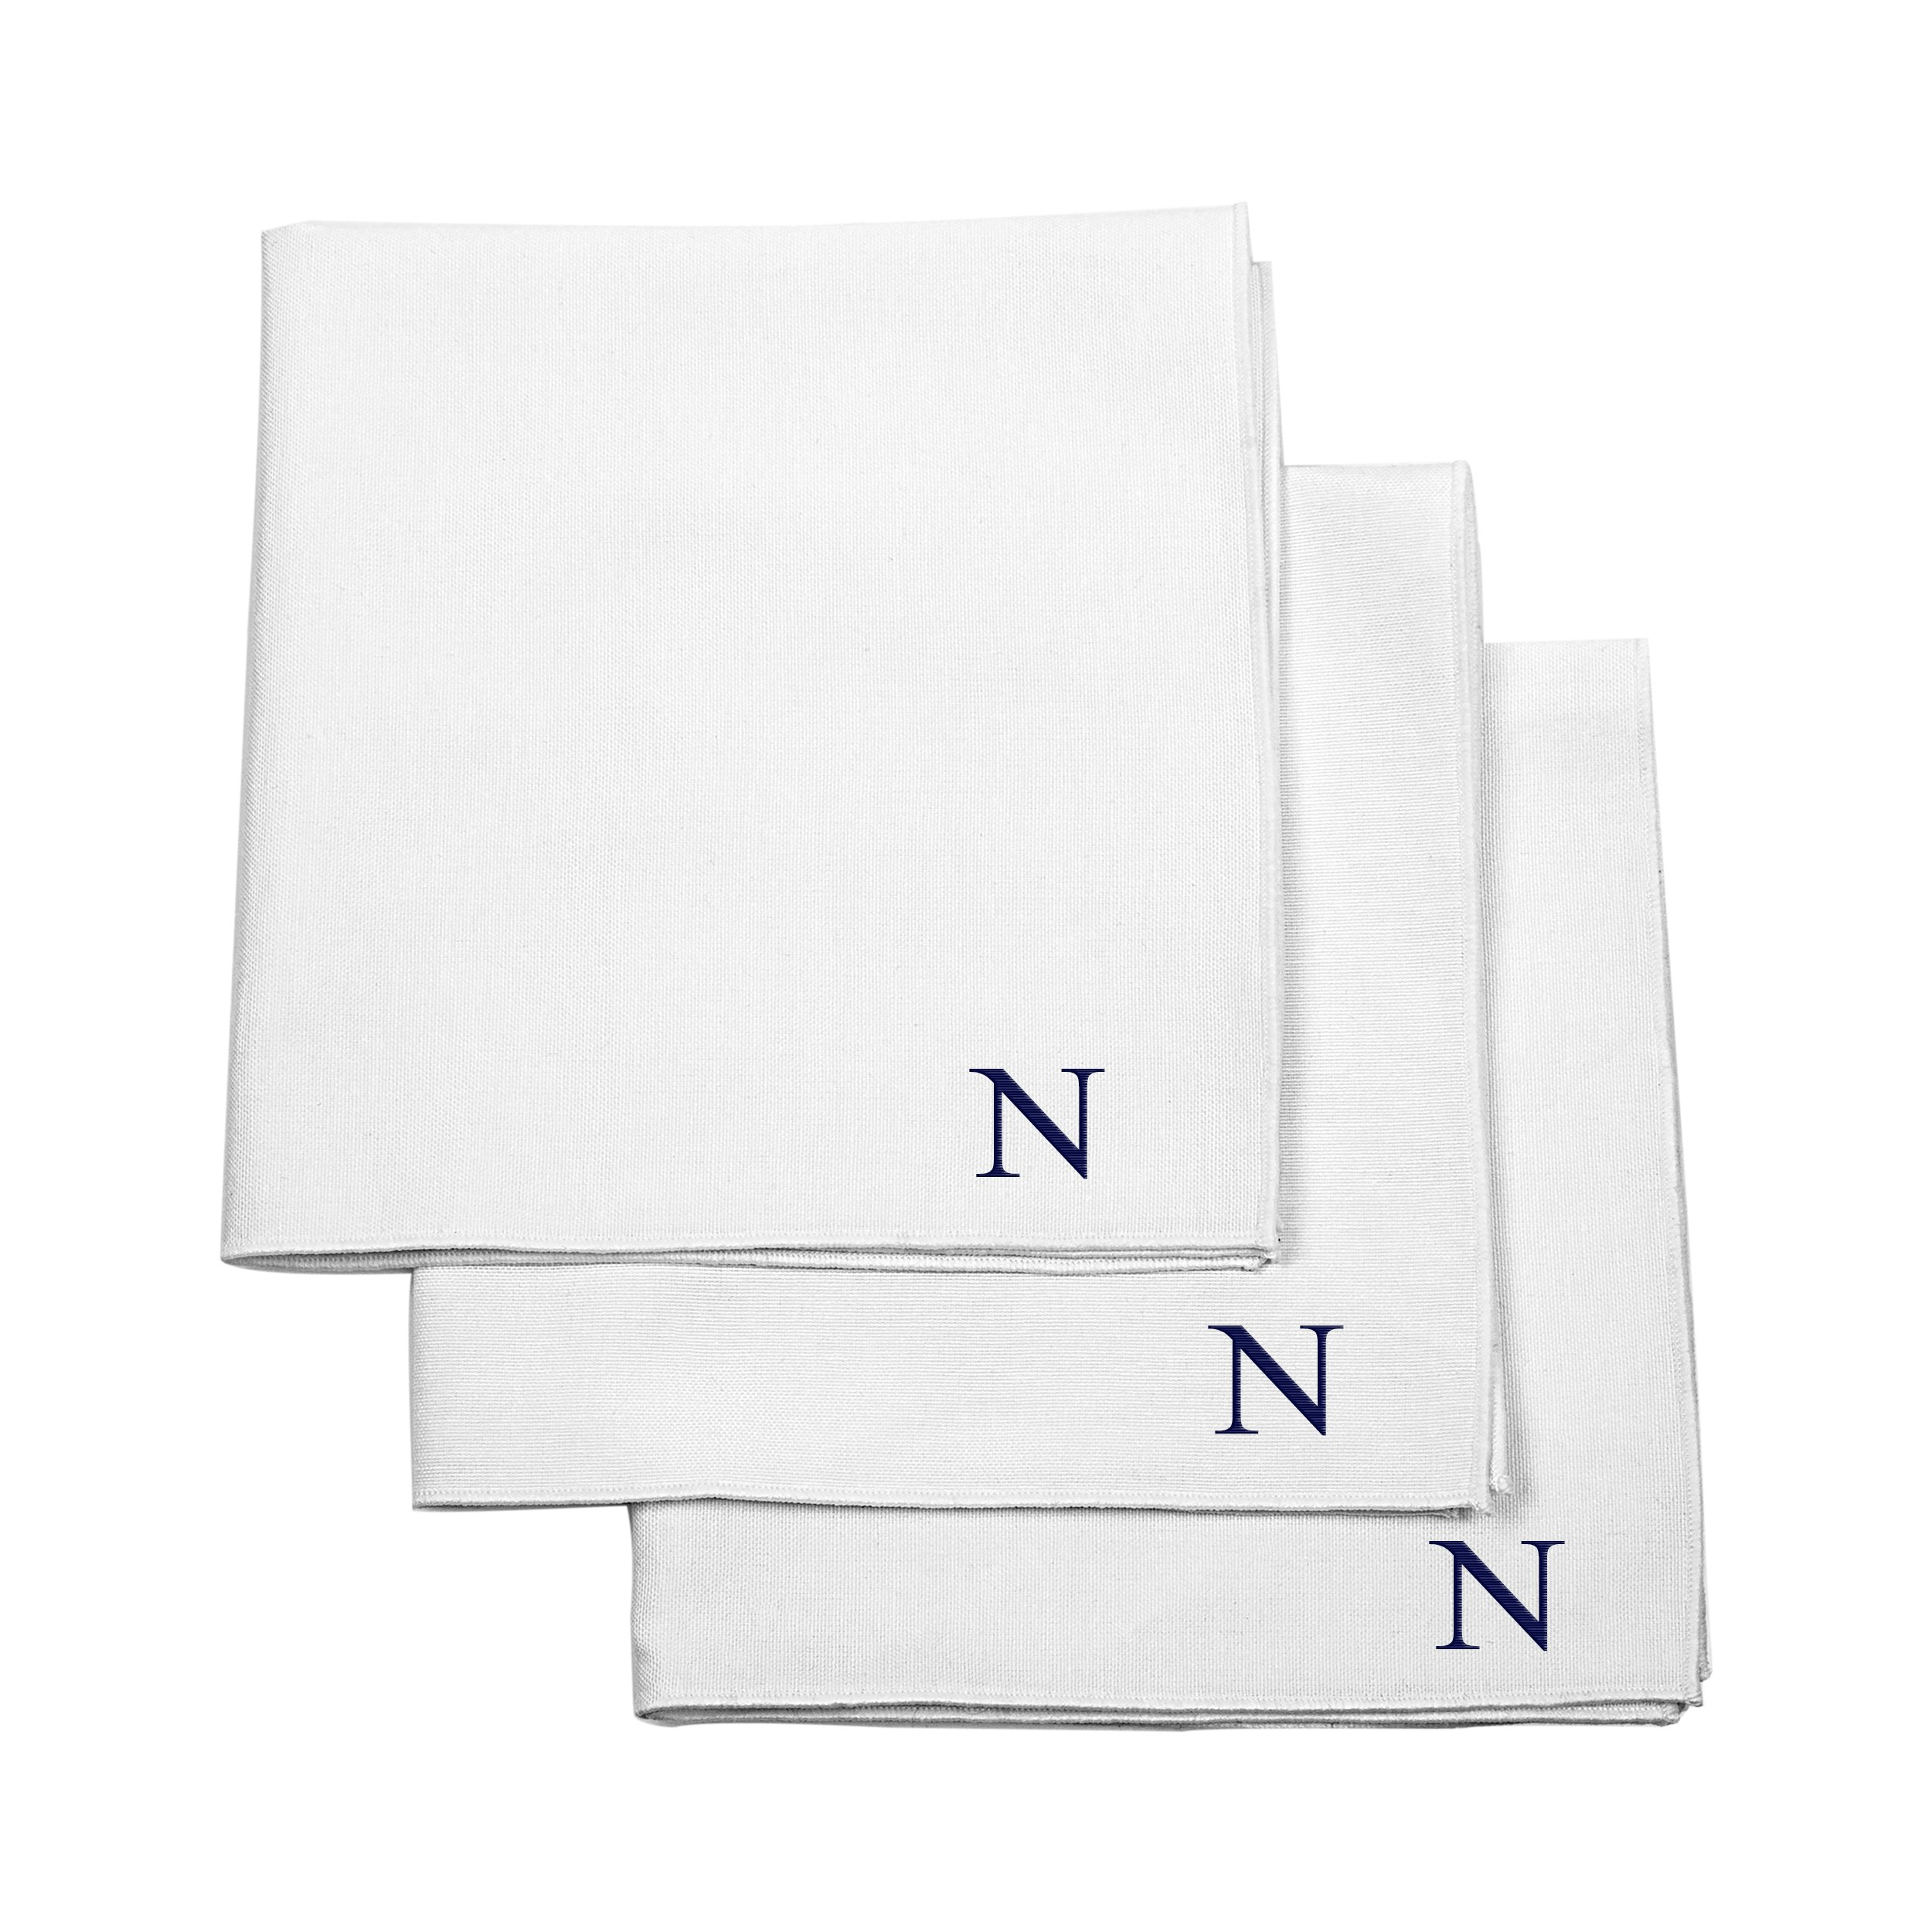 Cathy's Concepts Personalized Handkerchief Set, White, Letter N